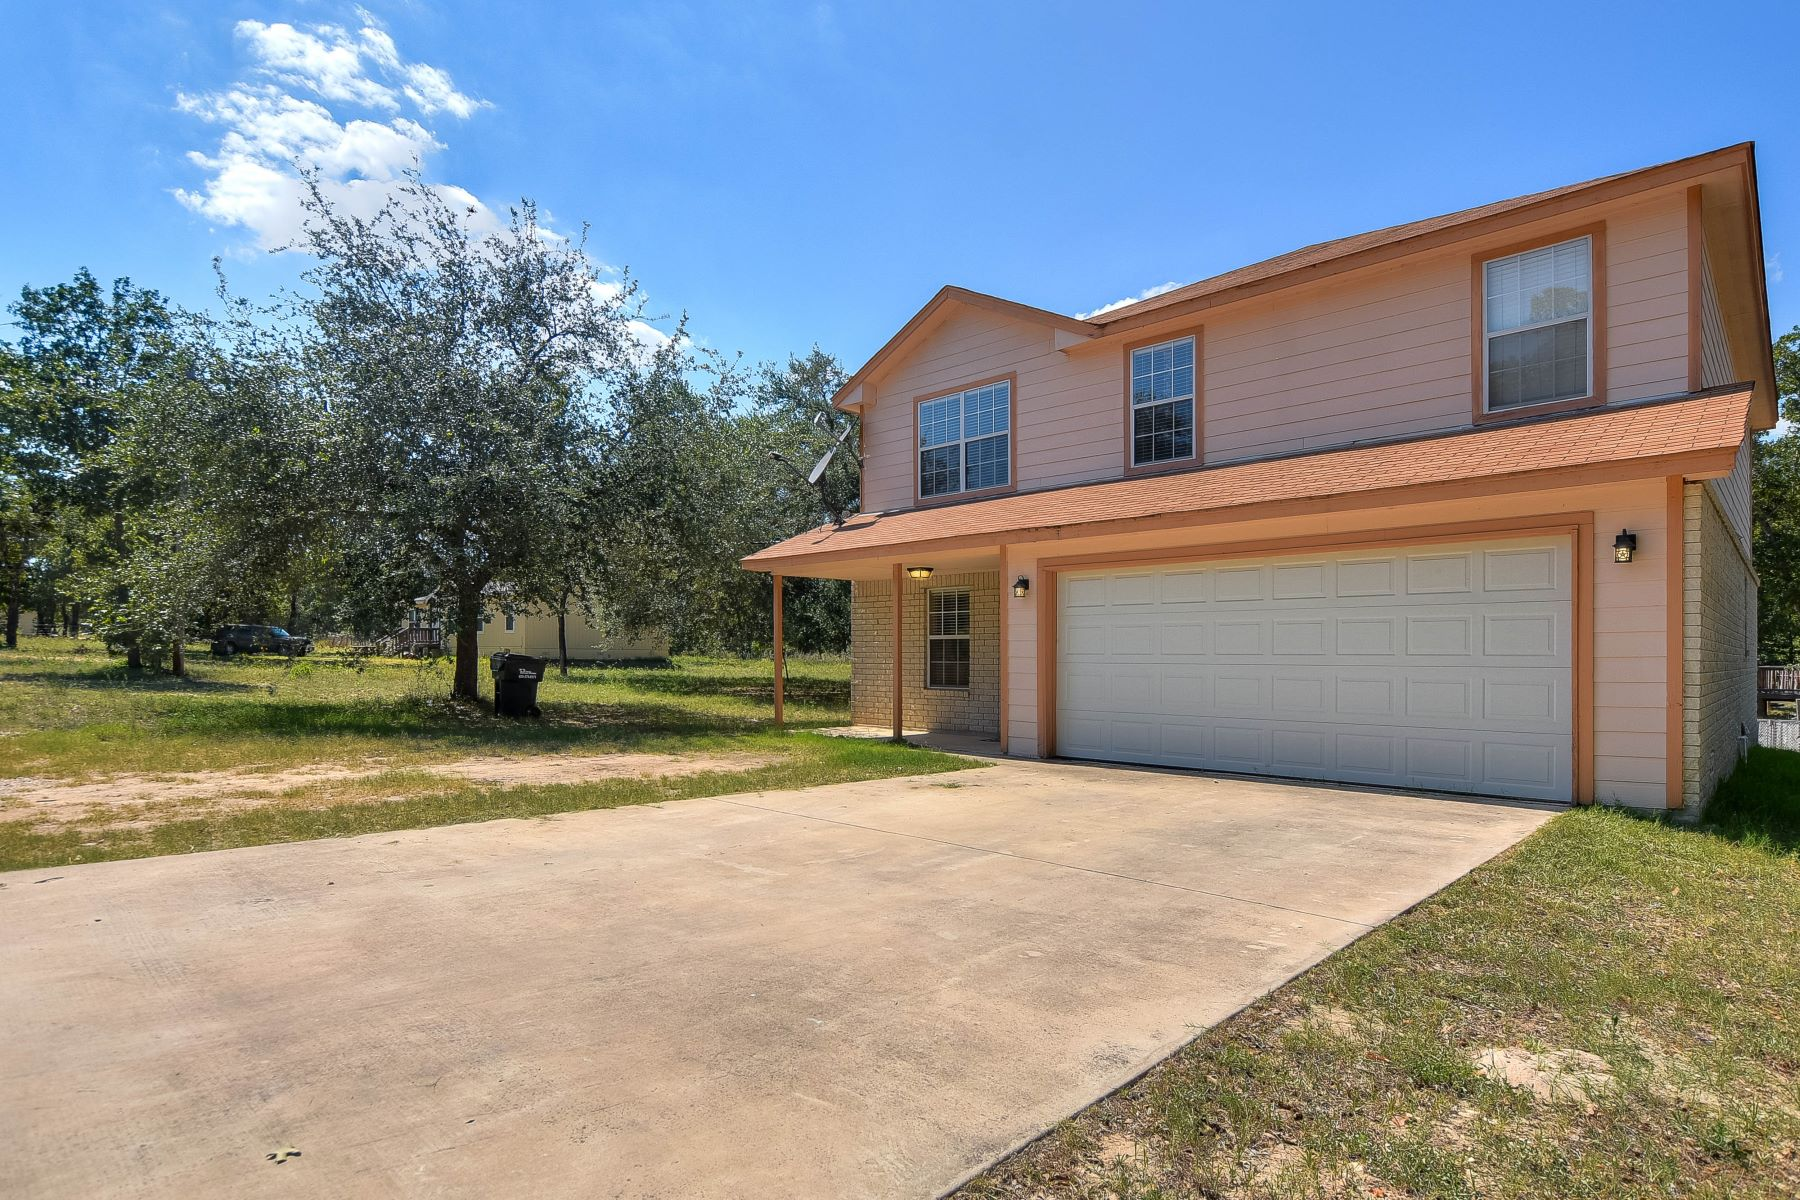 Single Family Home for Sale at Beautiful Home in Forest Woods 227 County Road 6862 Natalia, Texas 78059 United States